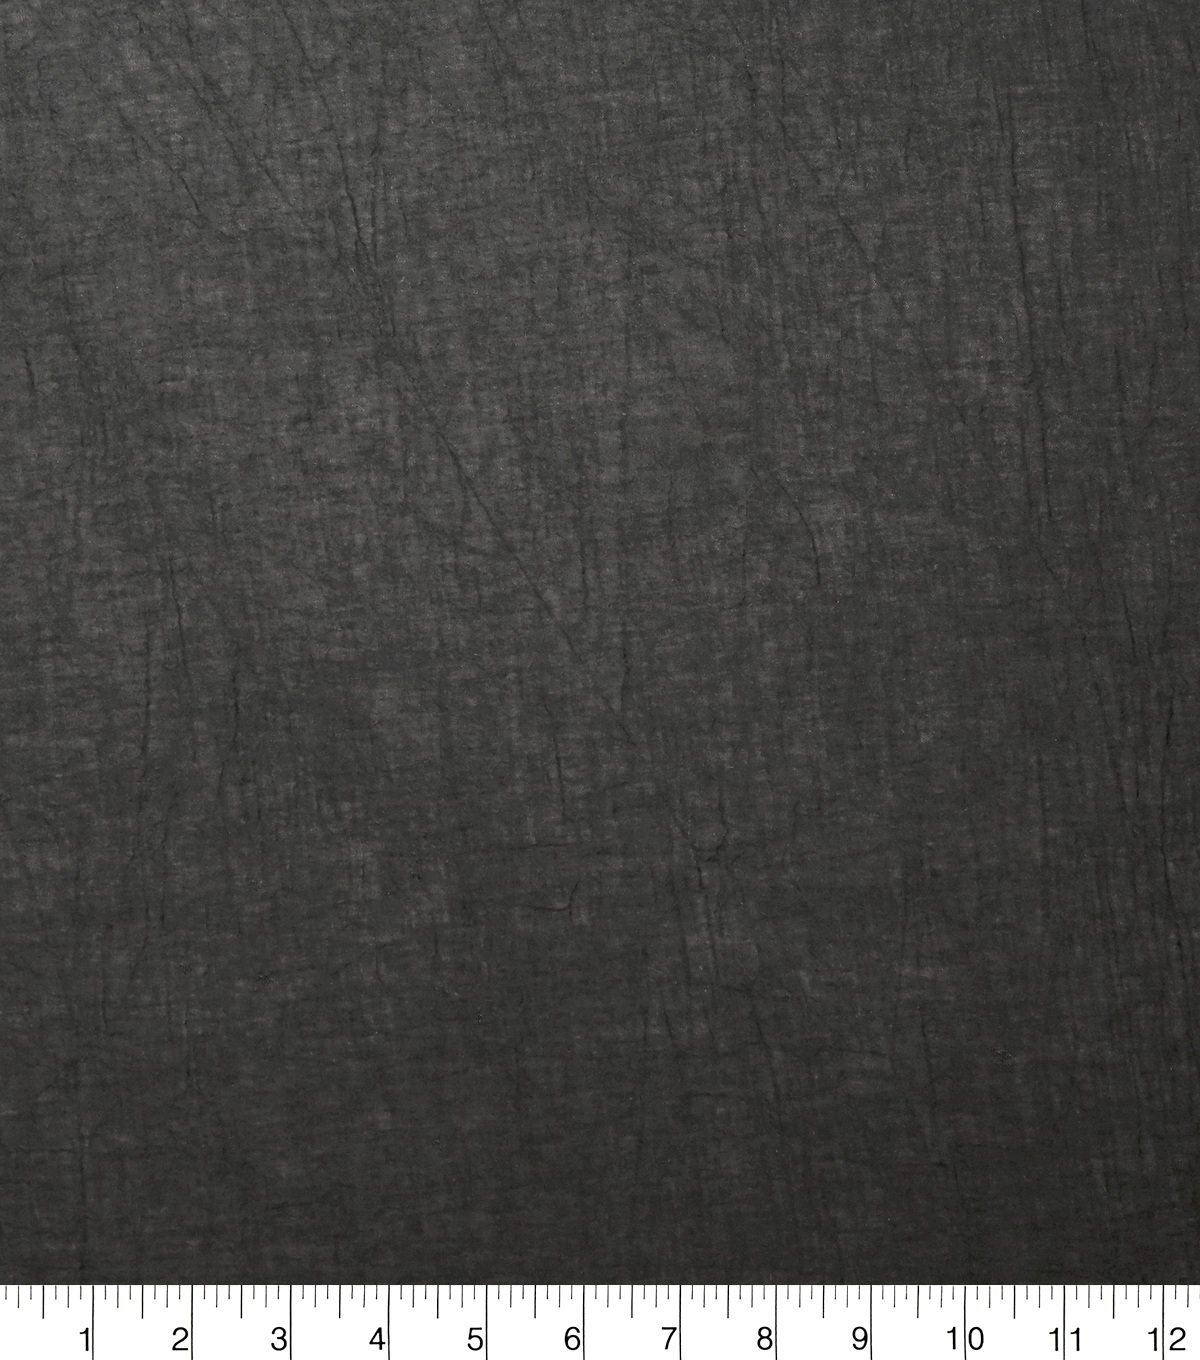 Specialty Solid Cotton Gauze Fabric, Black